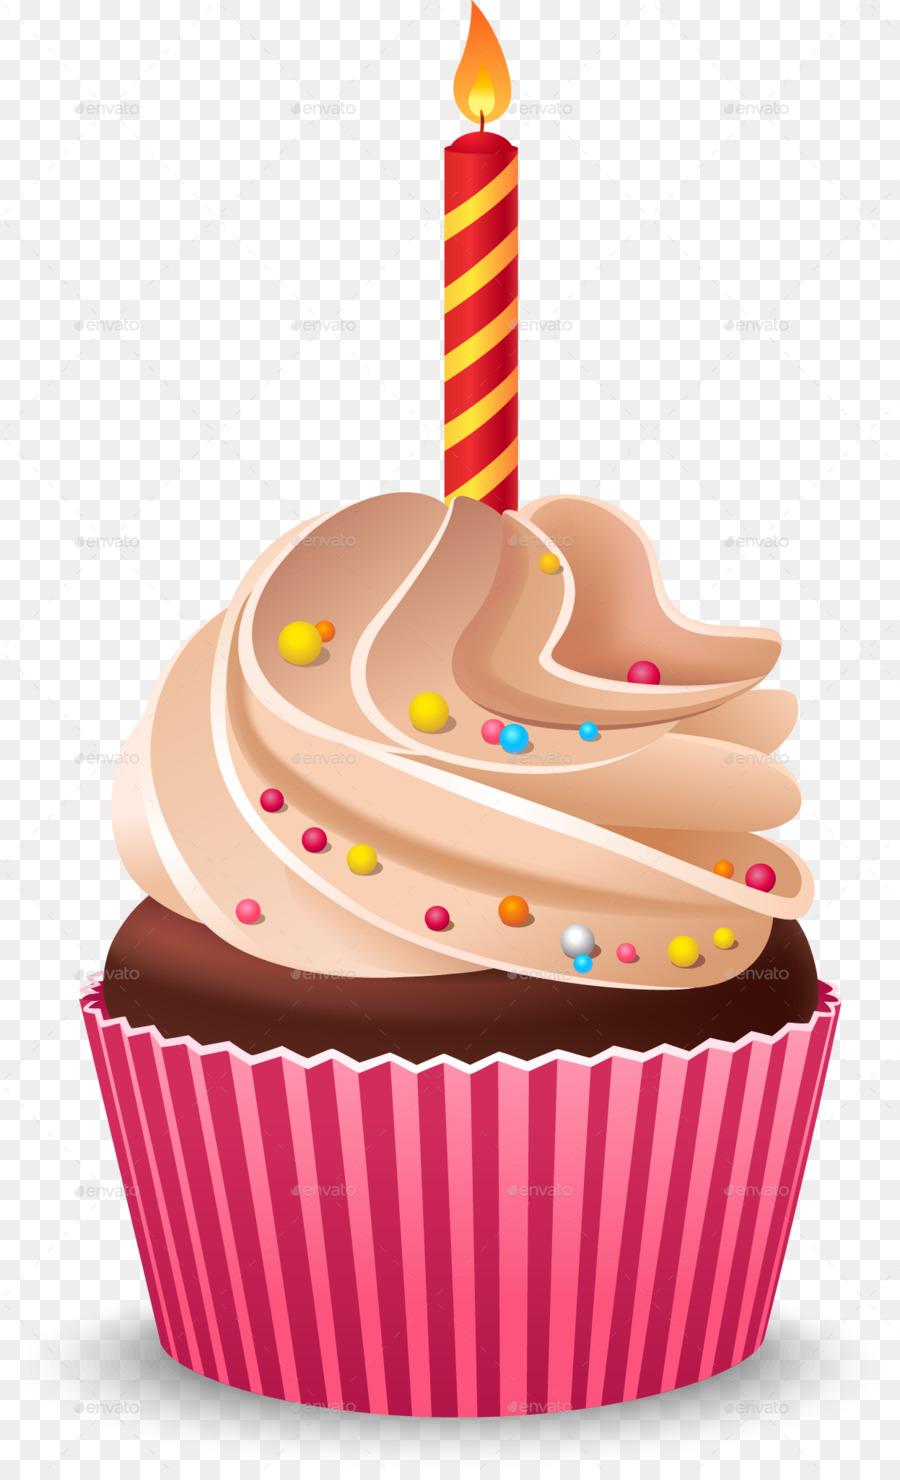 Cupcake Birthday Cake Cream Dairy Product Confectionery PNG